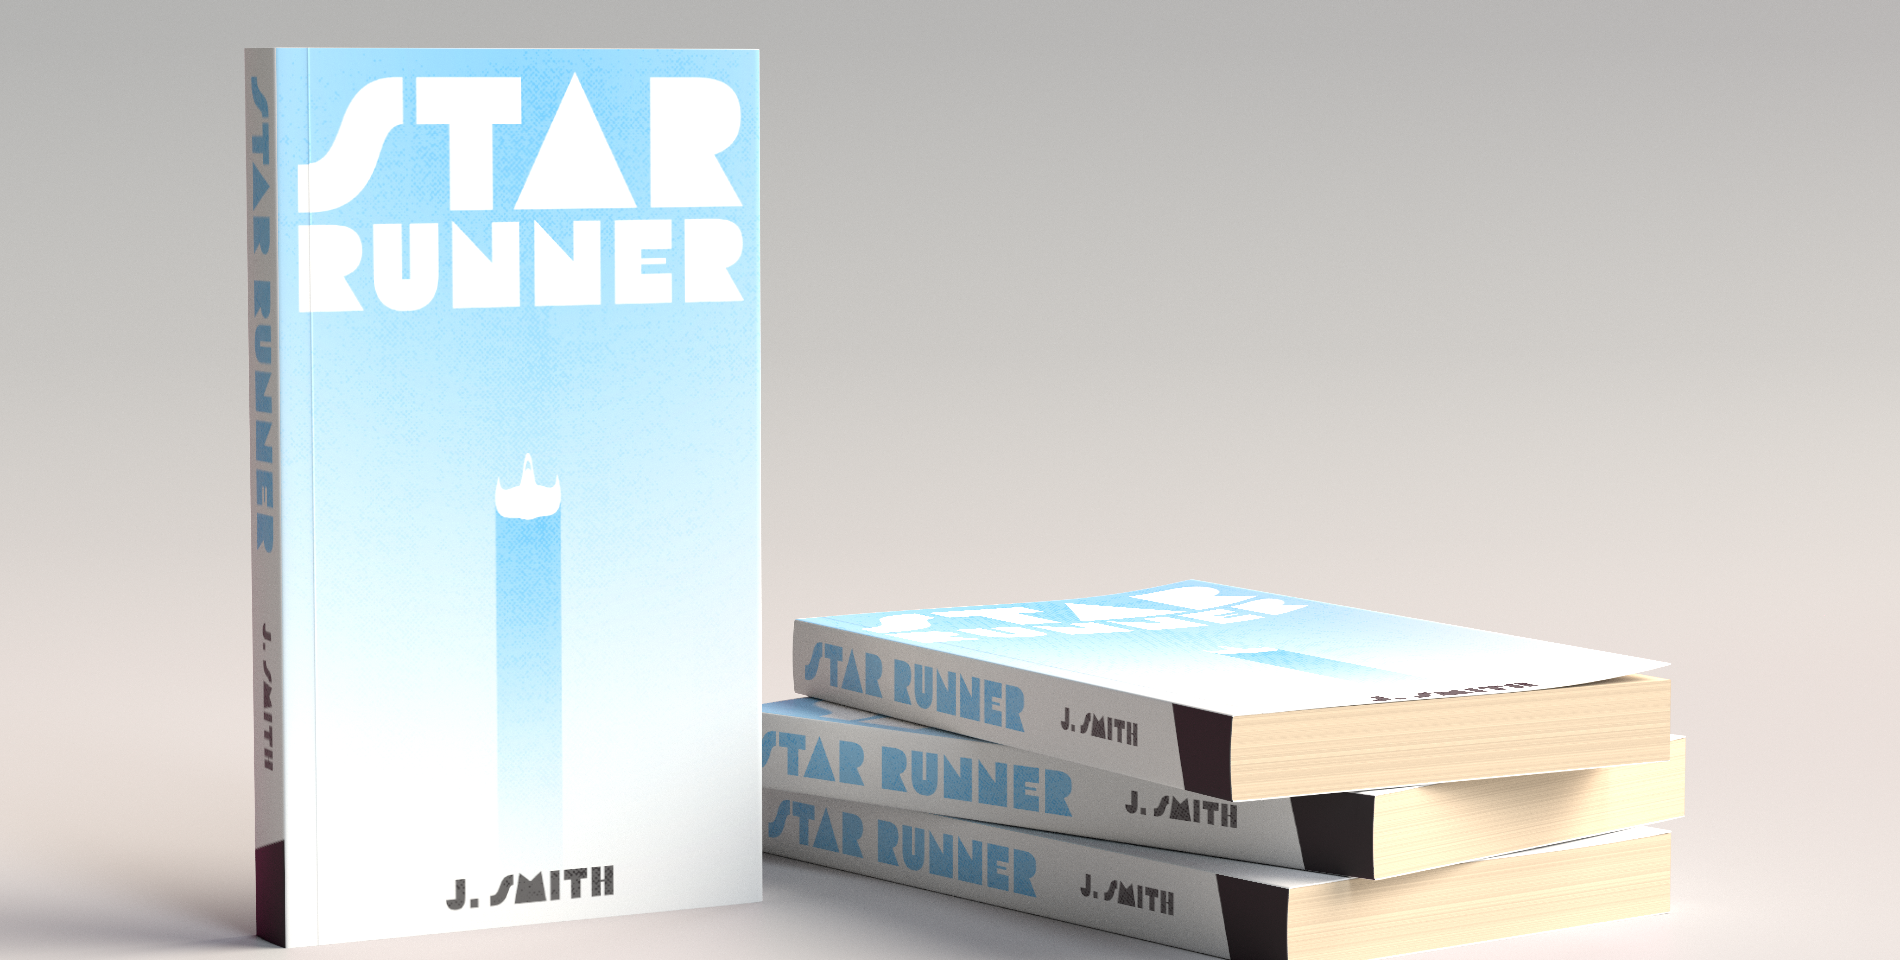 star runner book cover